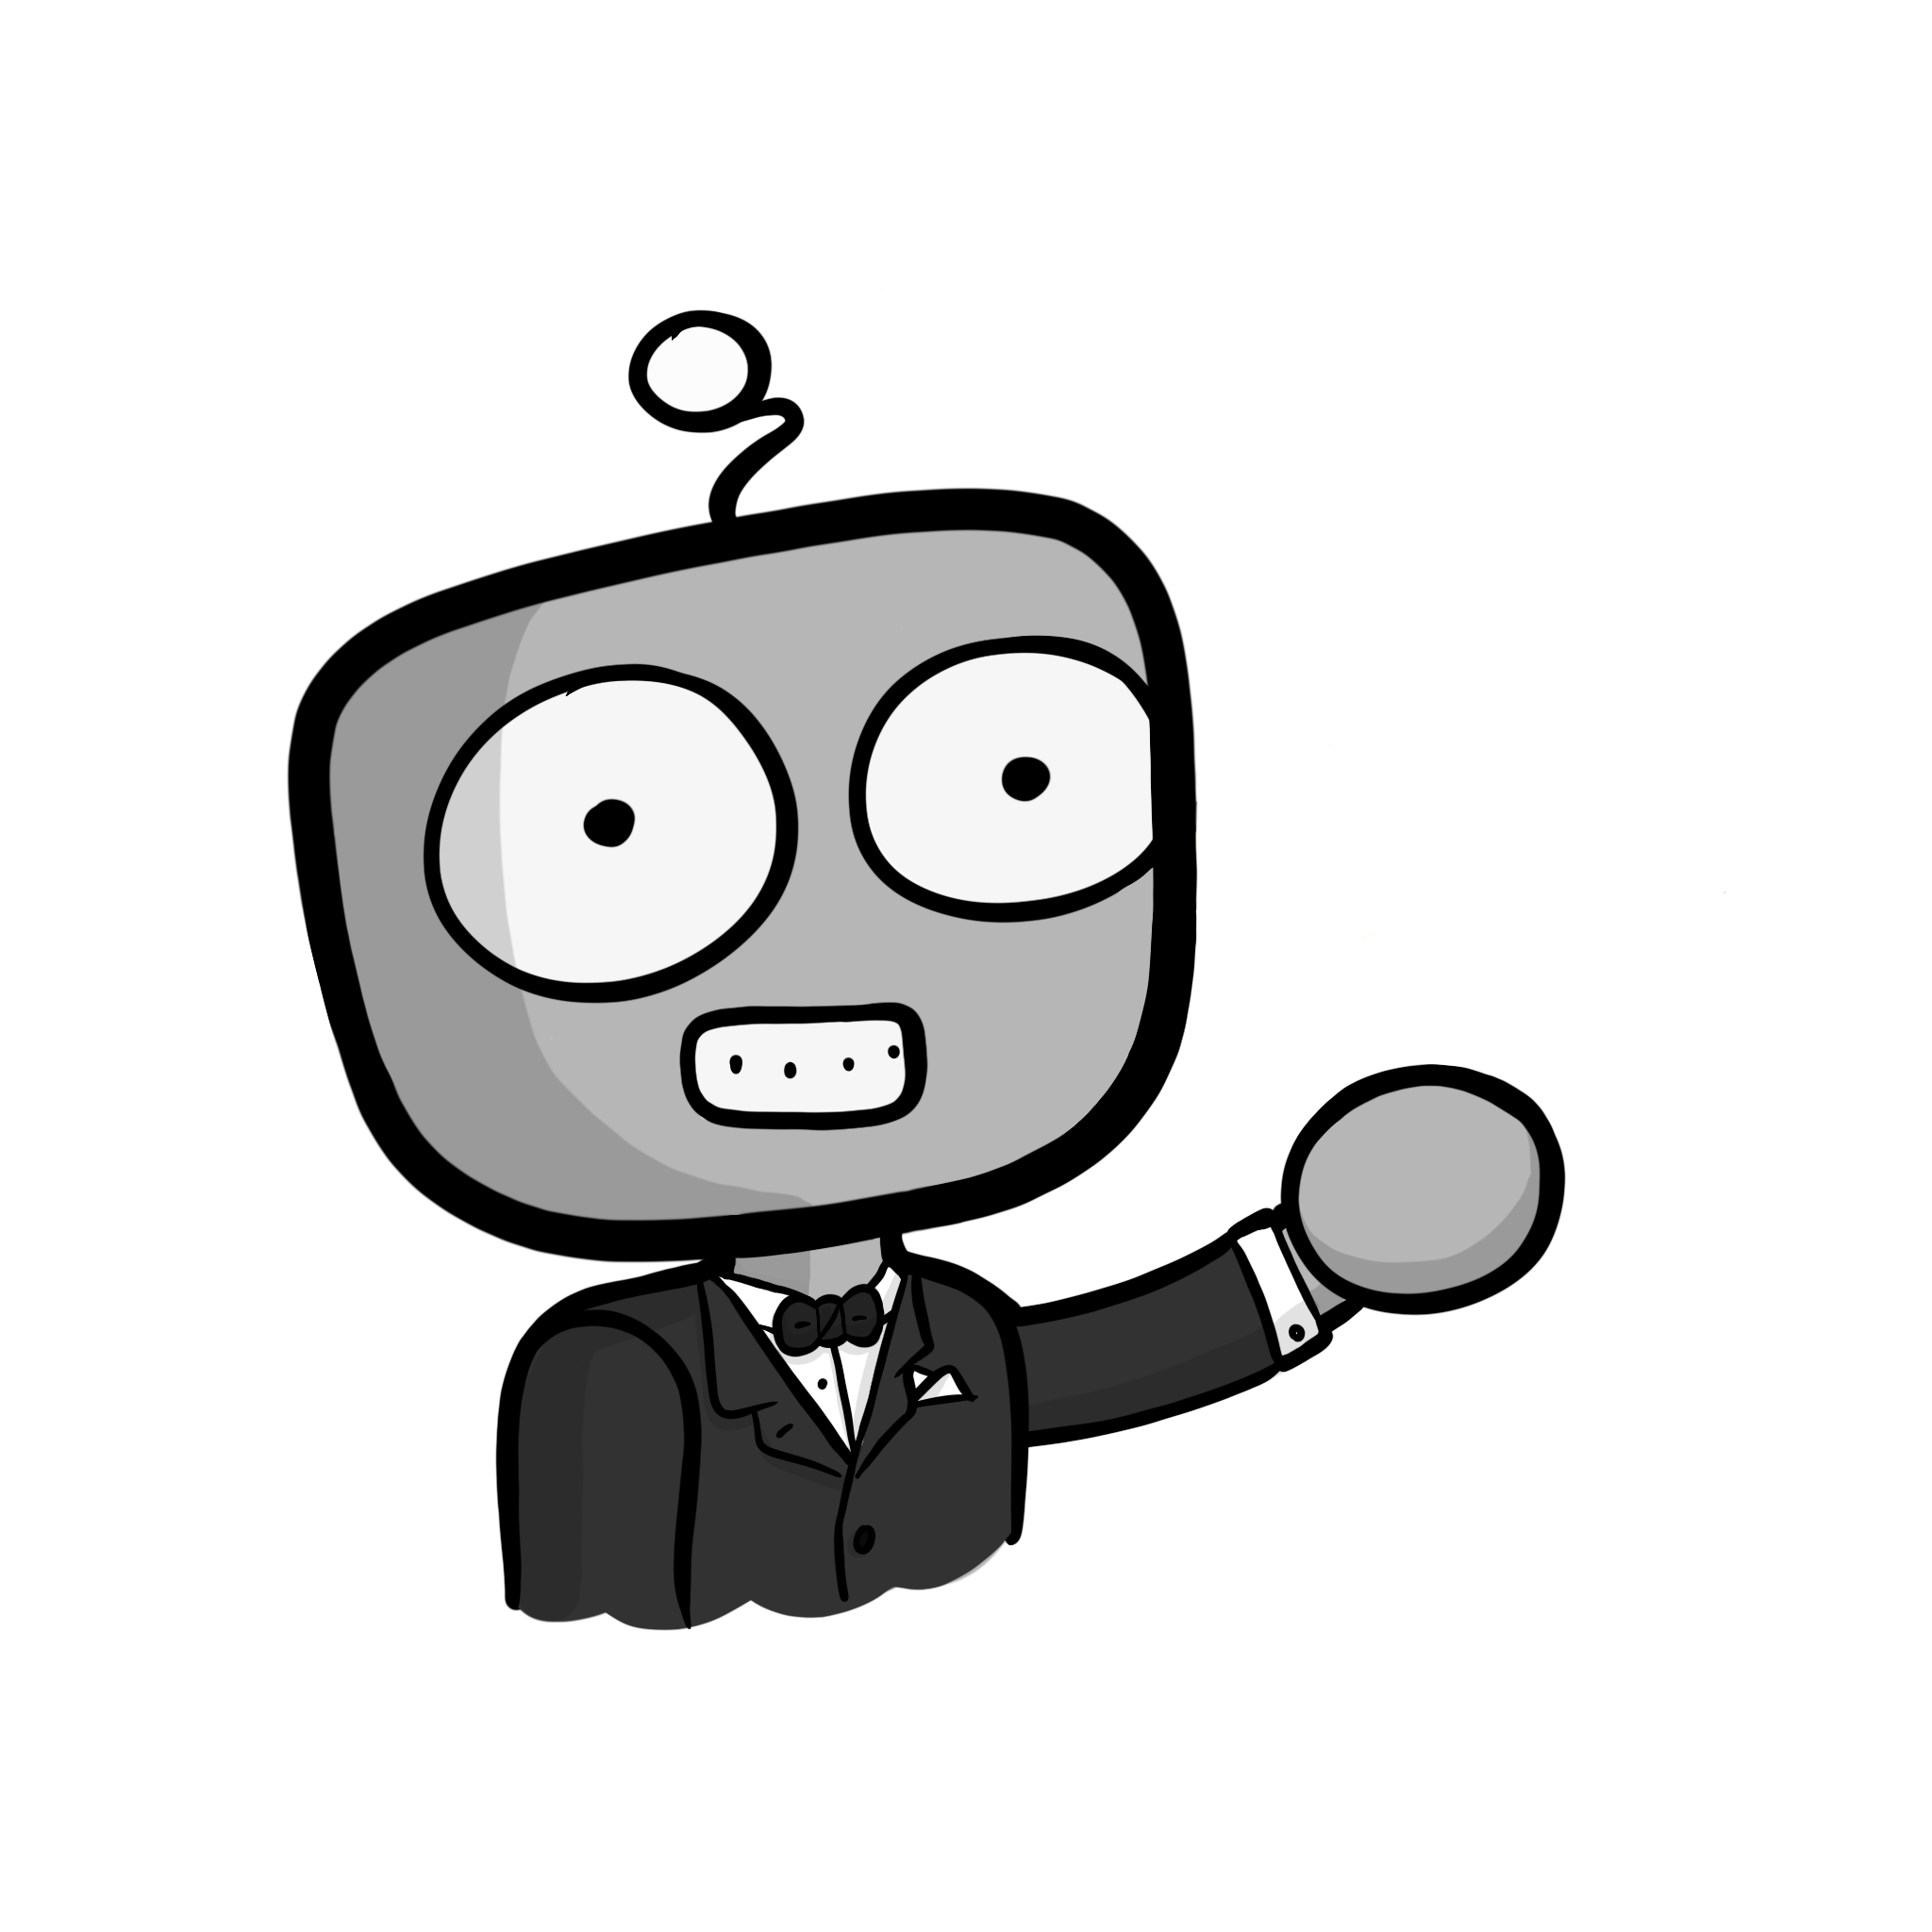 IT support robot with suit on